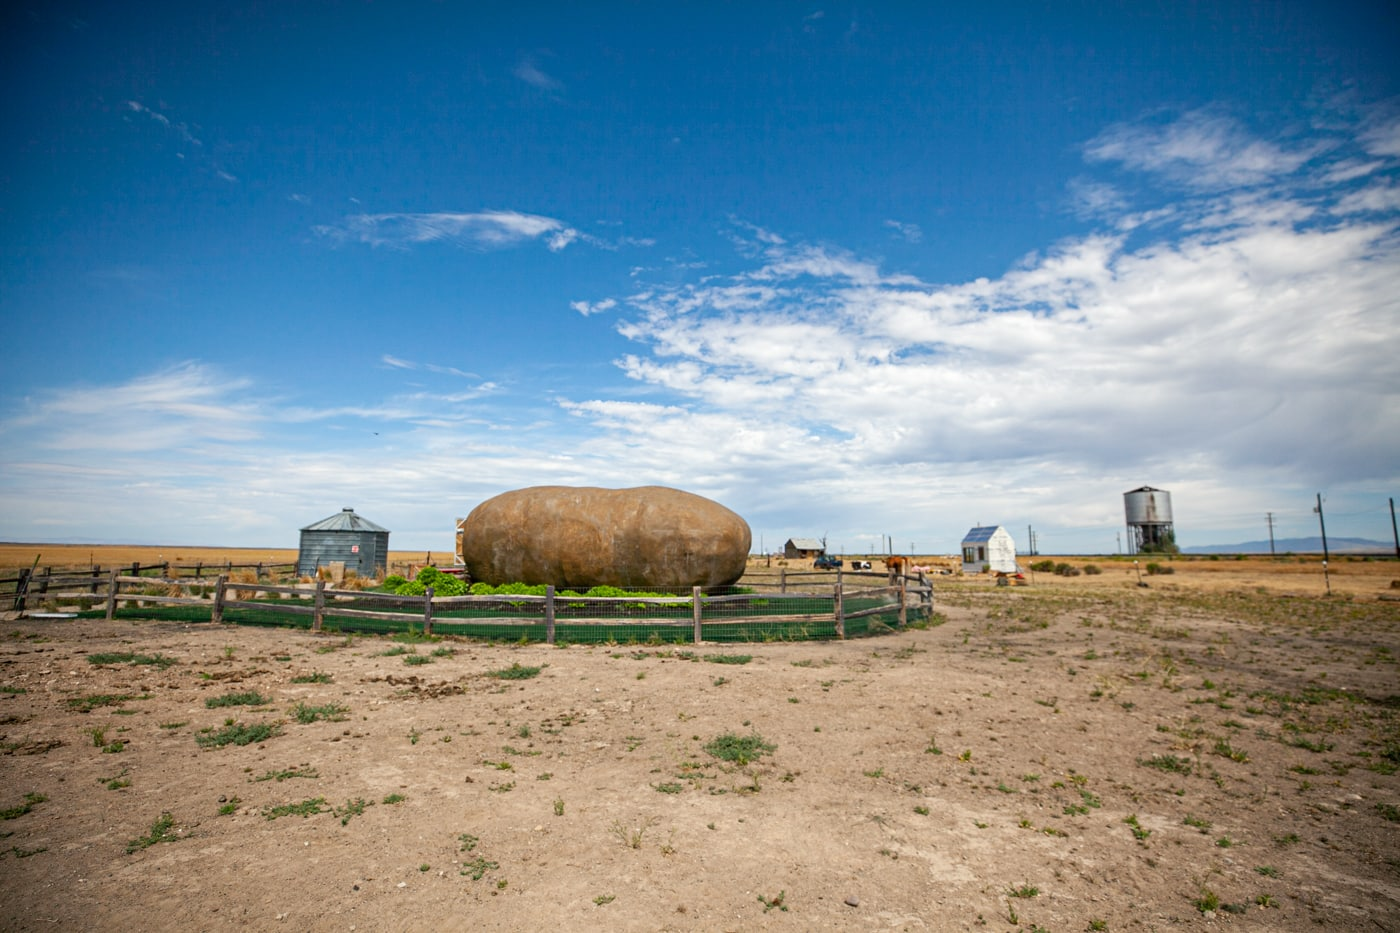 Big Idaho Potato Hotel AirBNB in Boise, Idaho - an AirBNB made from a giant potato | Idaho Roadside Attractions  and Weird Hotels